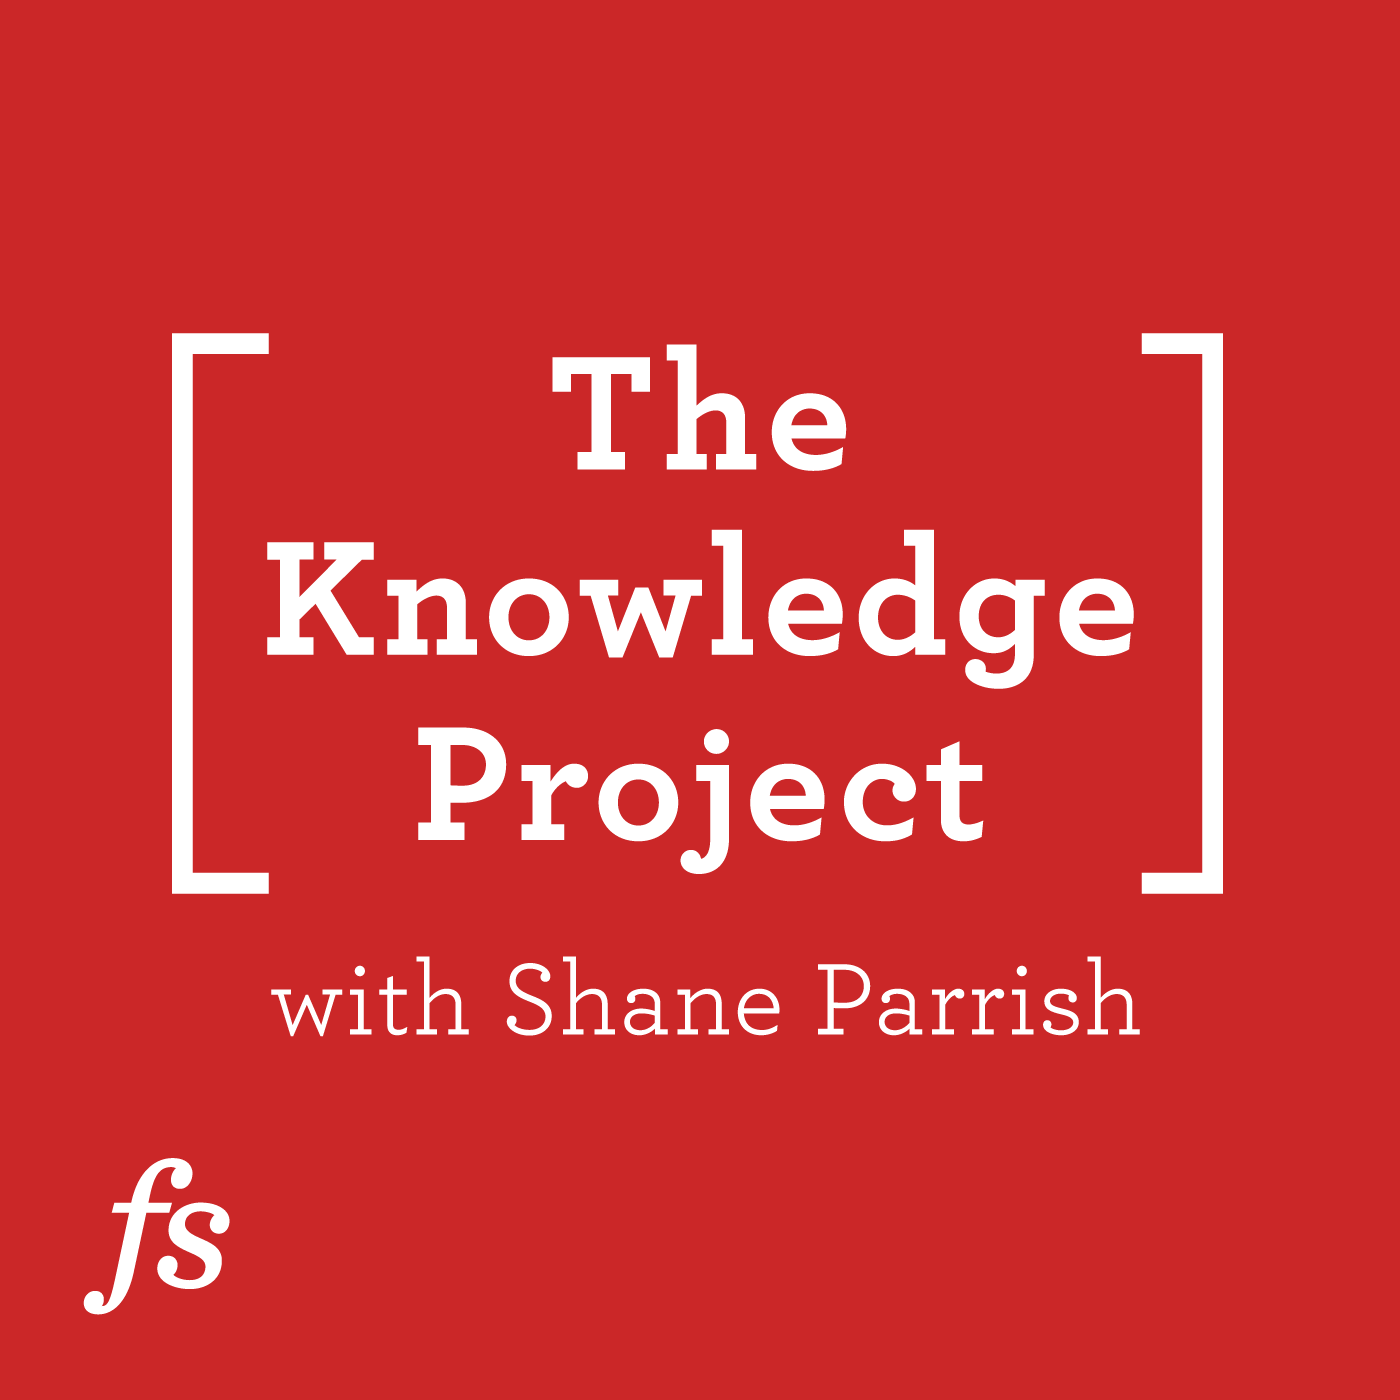 podcast thumbnail for 'The Knowledge Project with Shane Parrish'